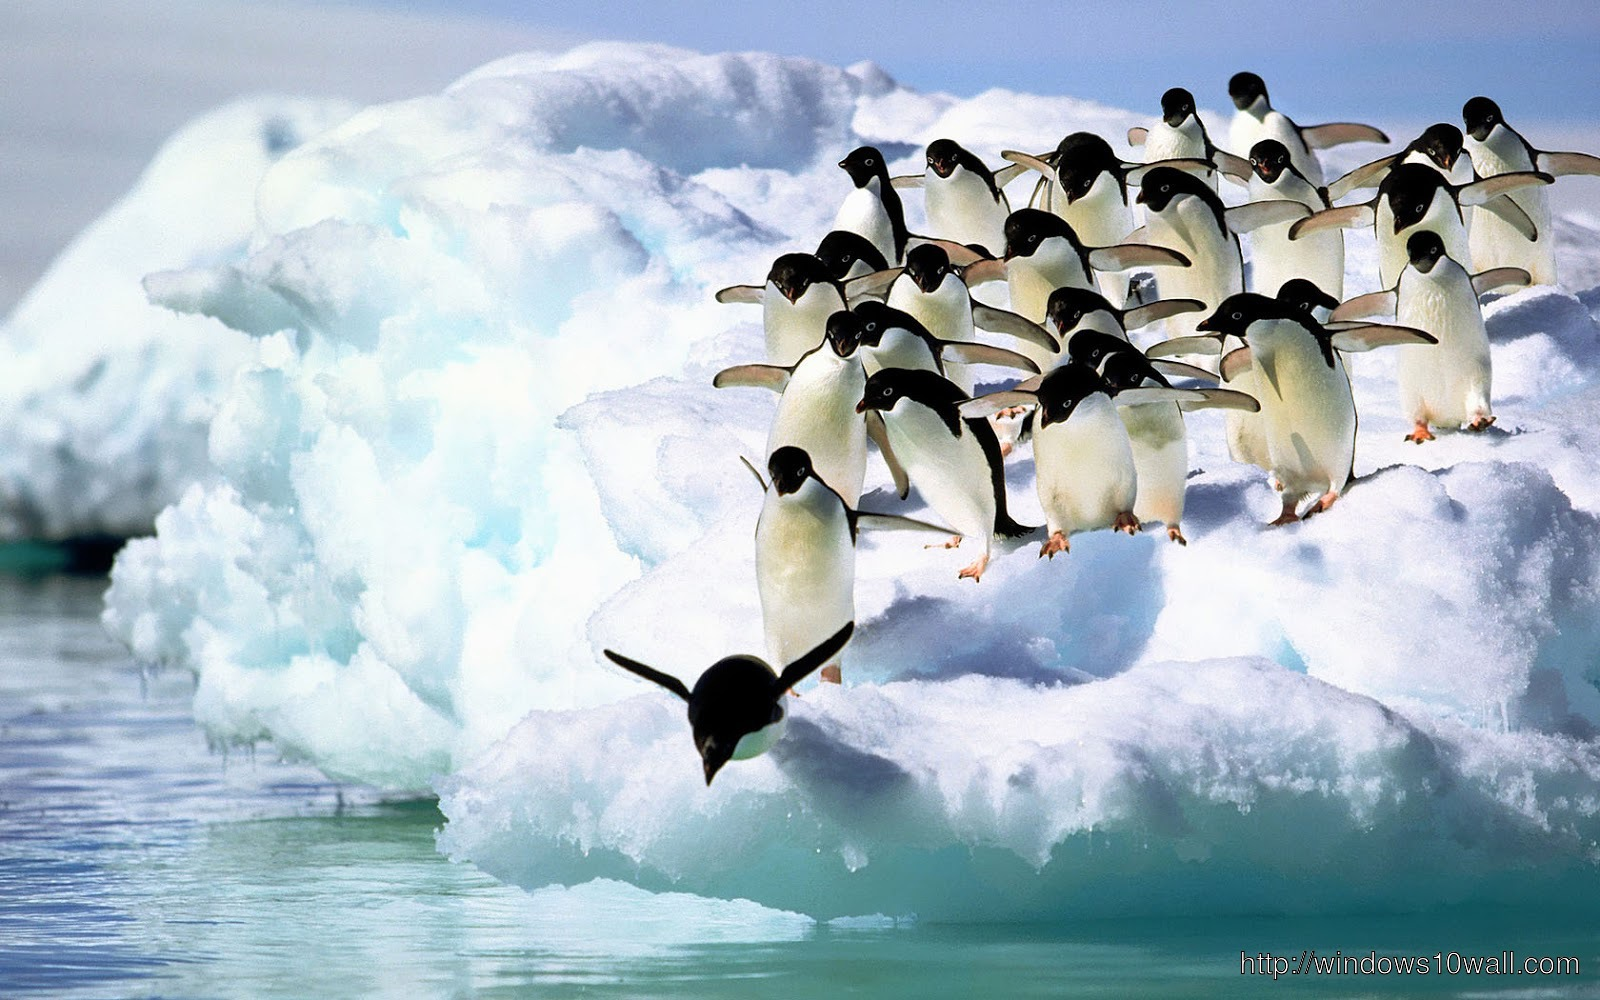 Falling Snow Live Wallpaper Iphone Penguins Jumping In Lake Hd Wallpaper Windows 10 Wallpapers